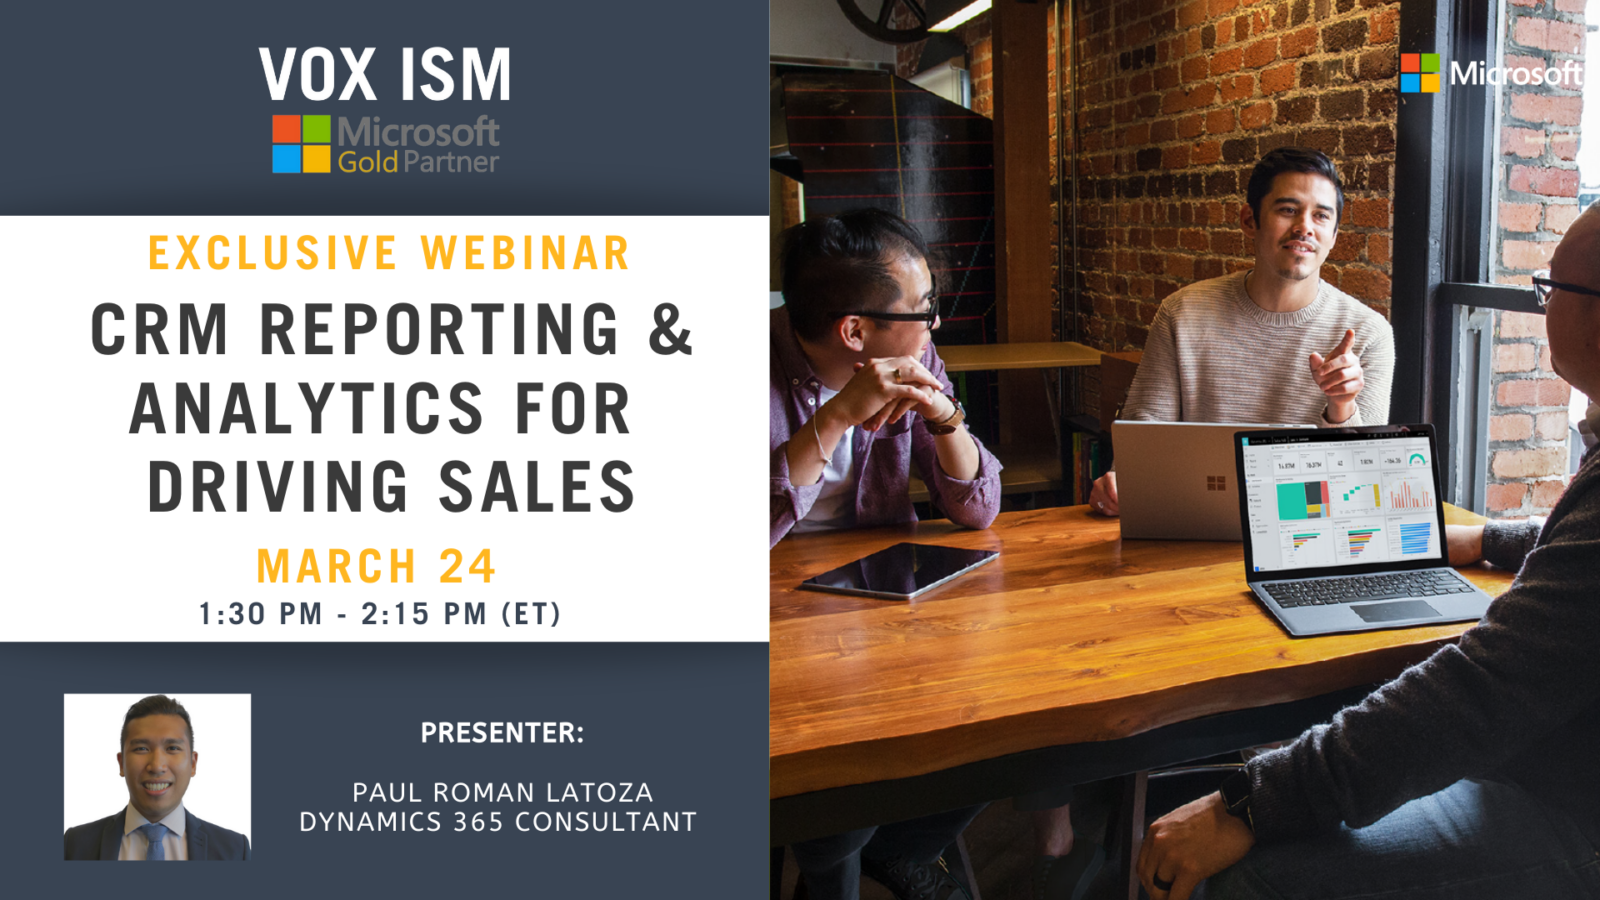 CRM Reporting & Analytics for Driving Sales - March 24 - Webinar